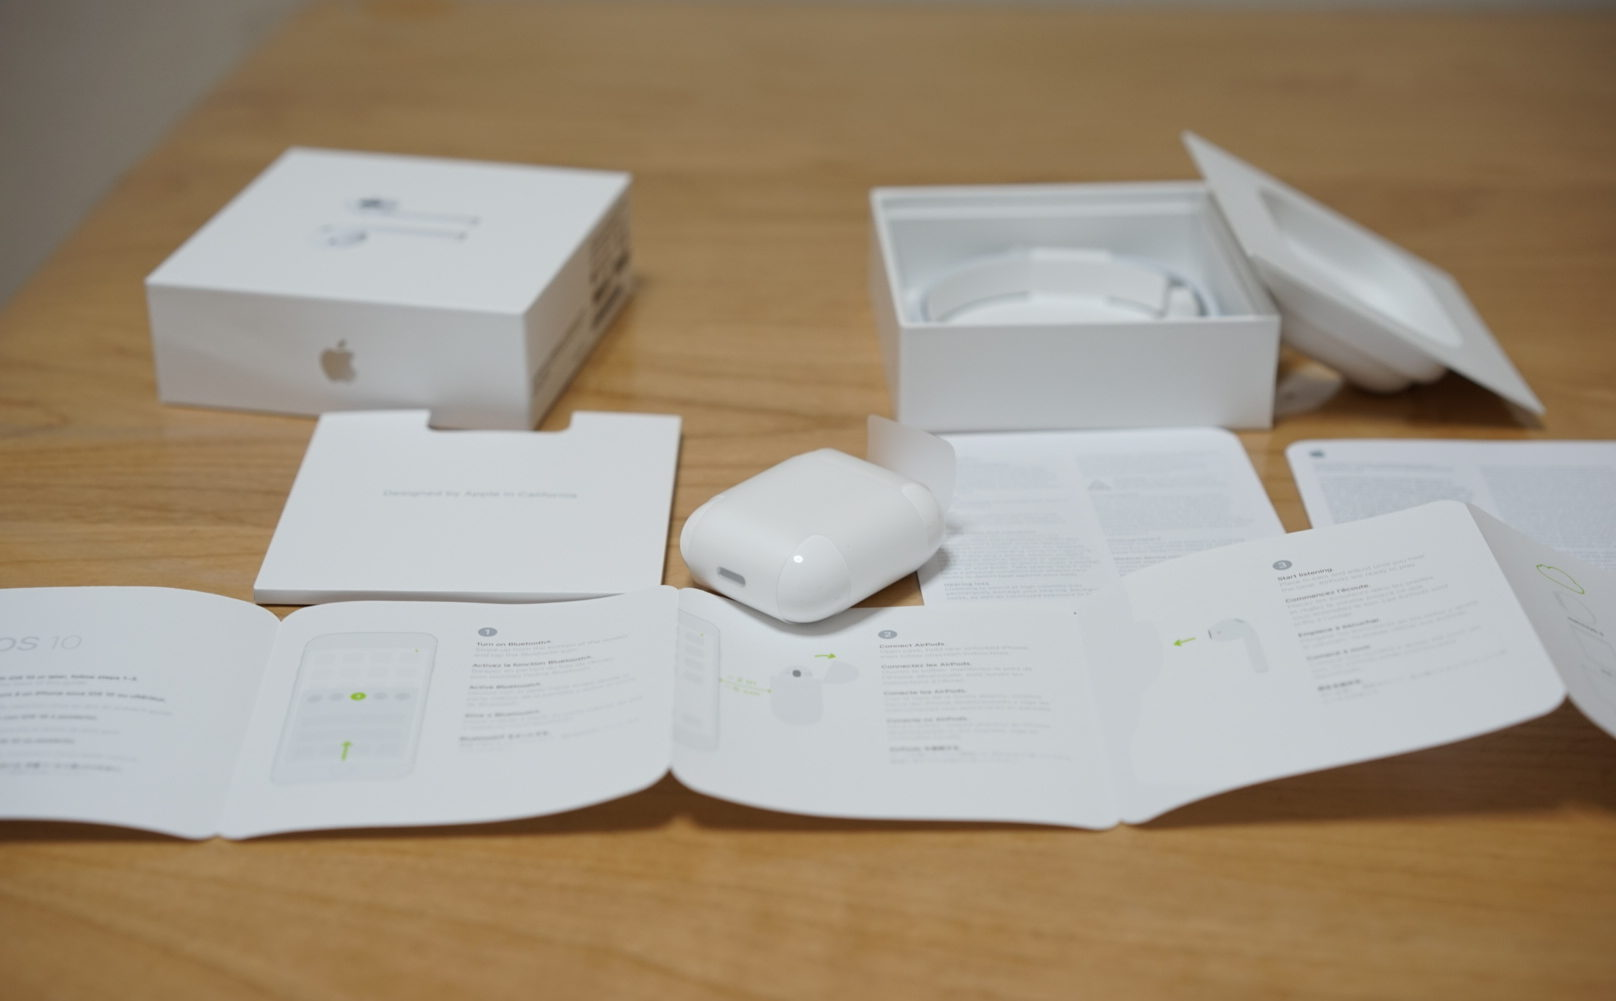 Stuffs inside the box Airpods